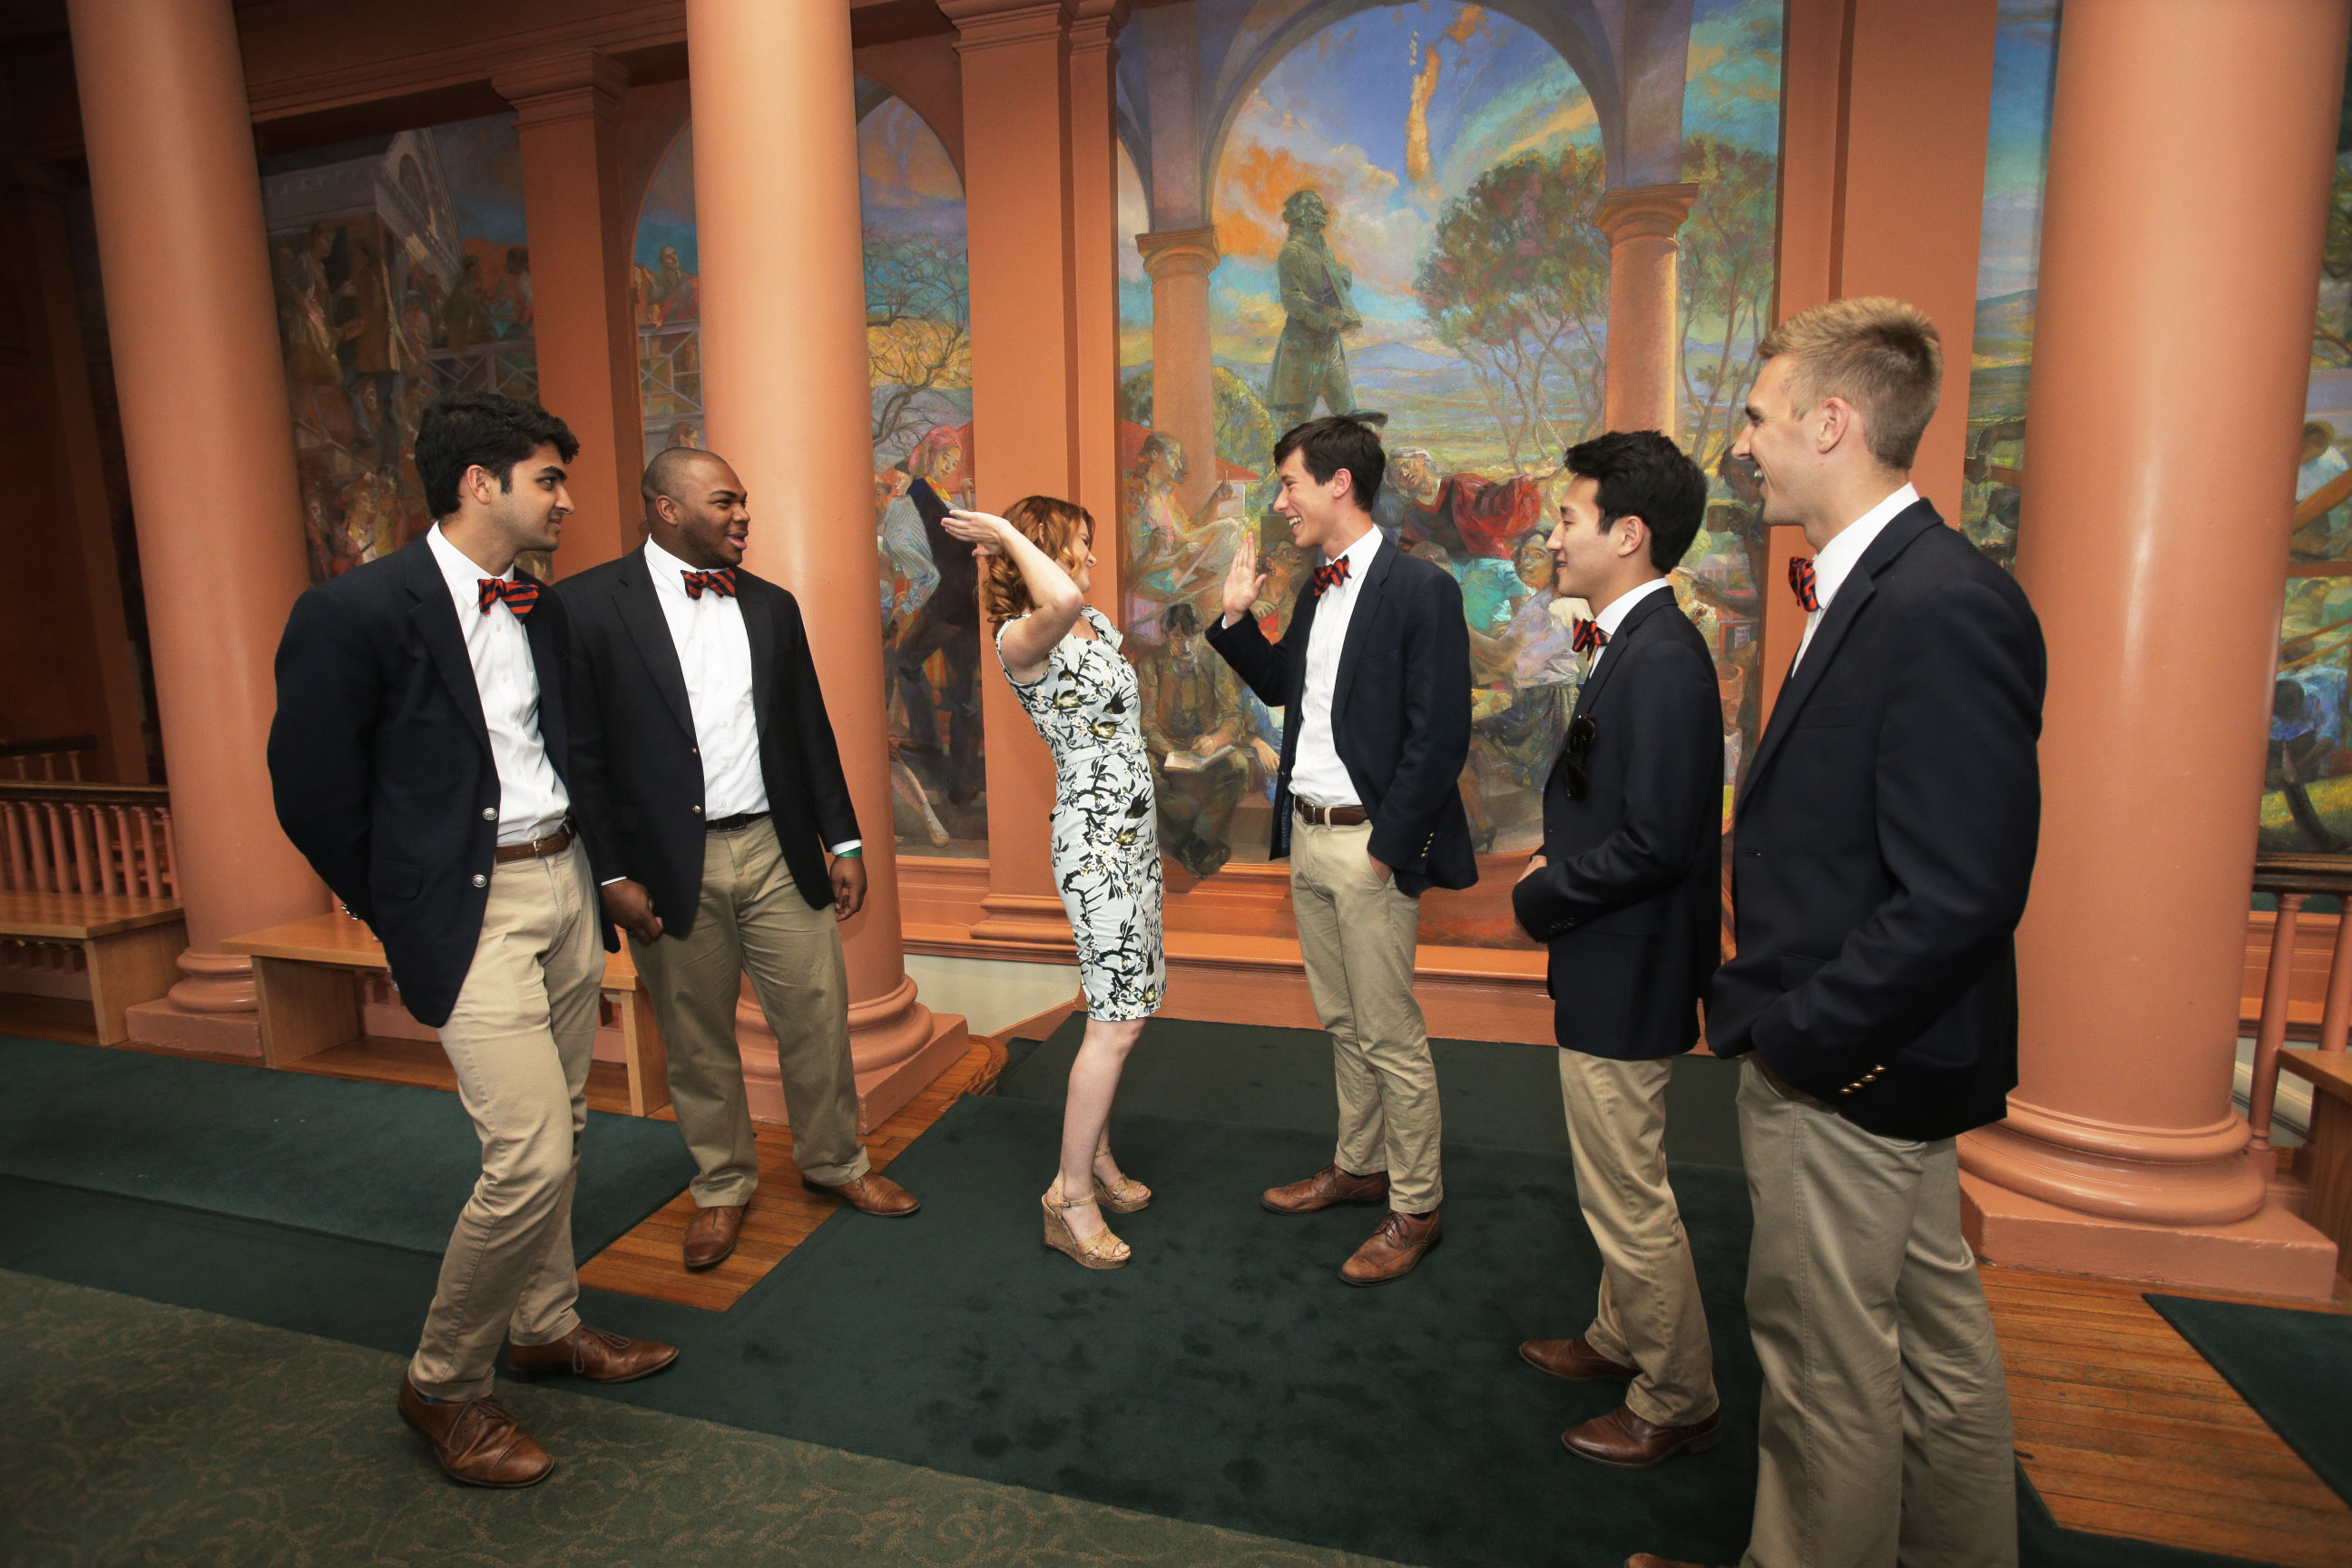 arah Drew exchanges a high five with members of the Virginia Gentlemen. (Photos by Sanjay Suchak and Dan Addison)